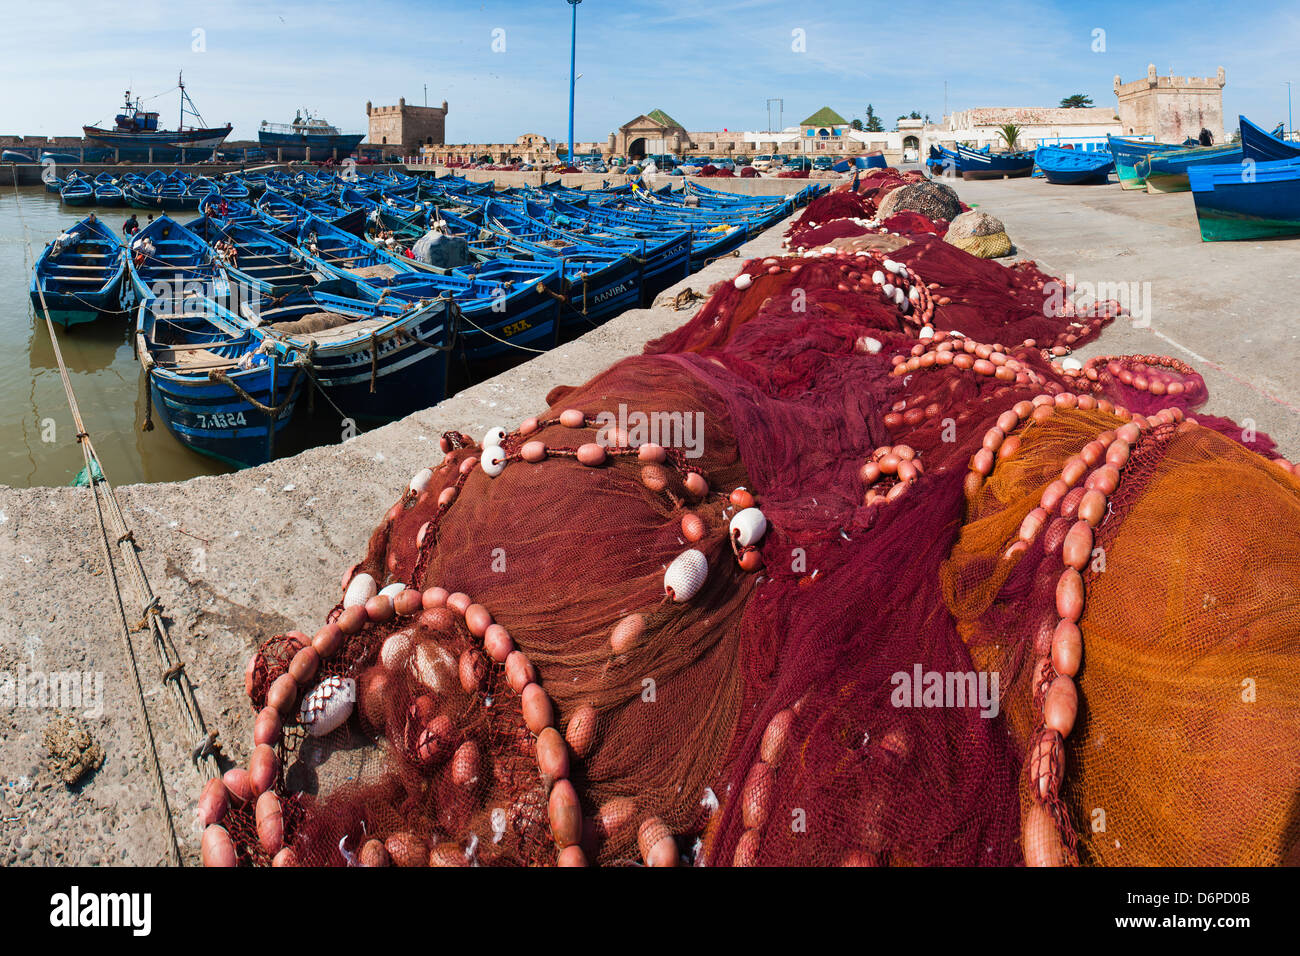 Fishing nets and blue fishing boats in Essaouira Port, formerly Mogador, Morocco, North Africa, Africa - Stock Image